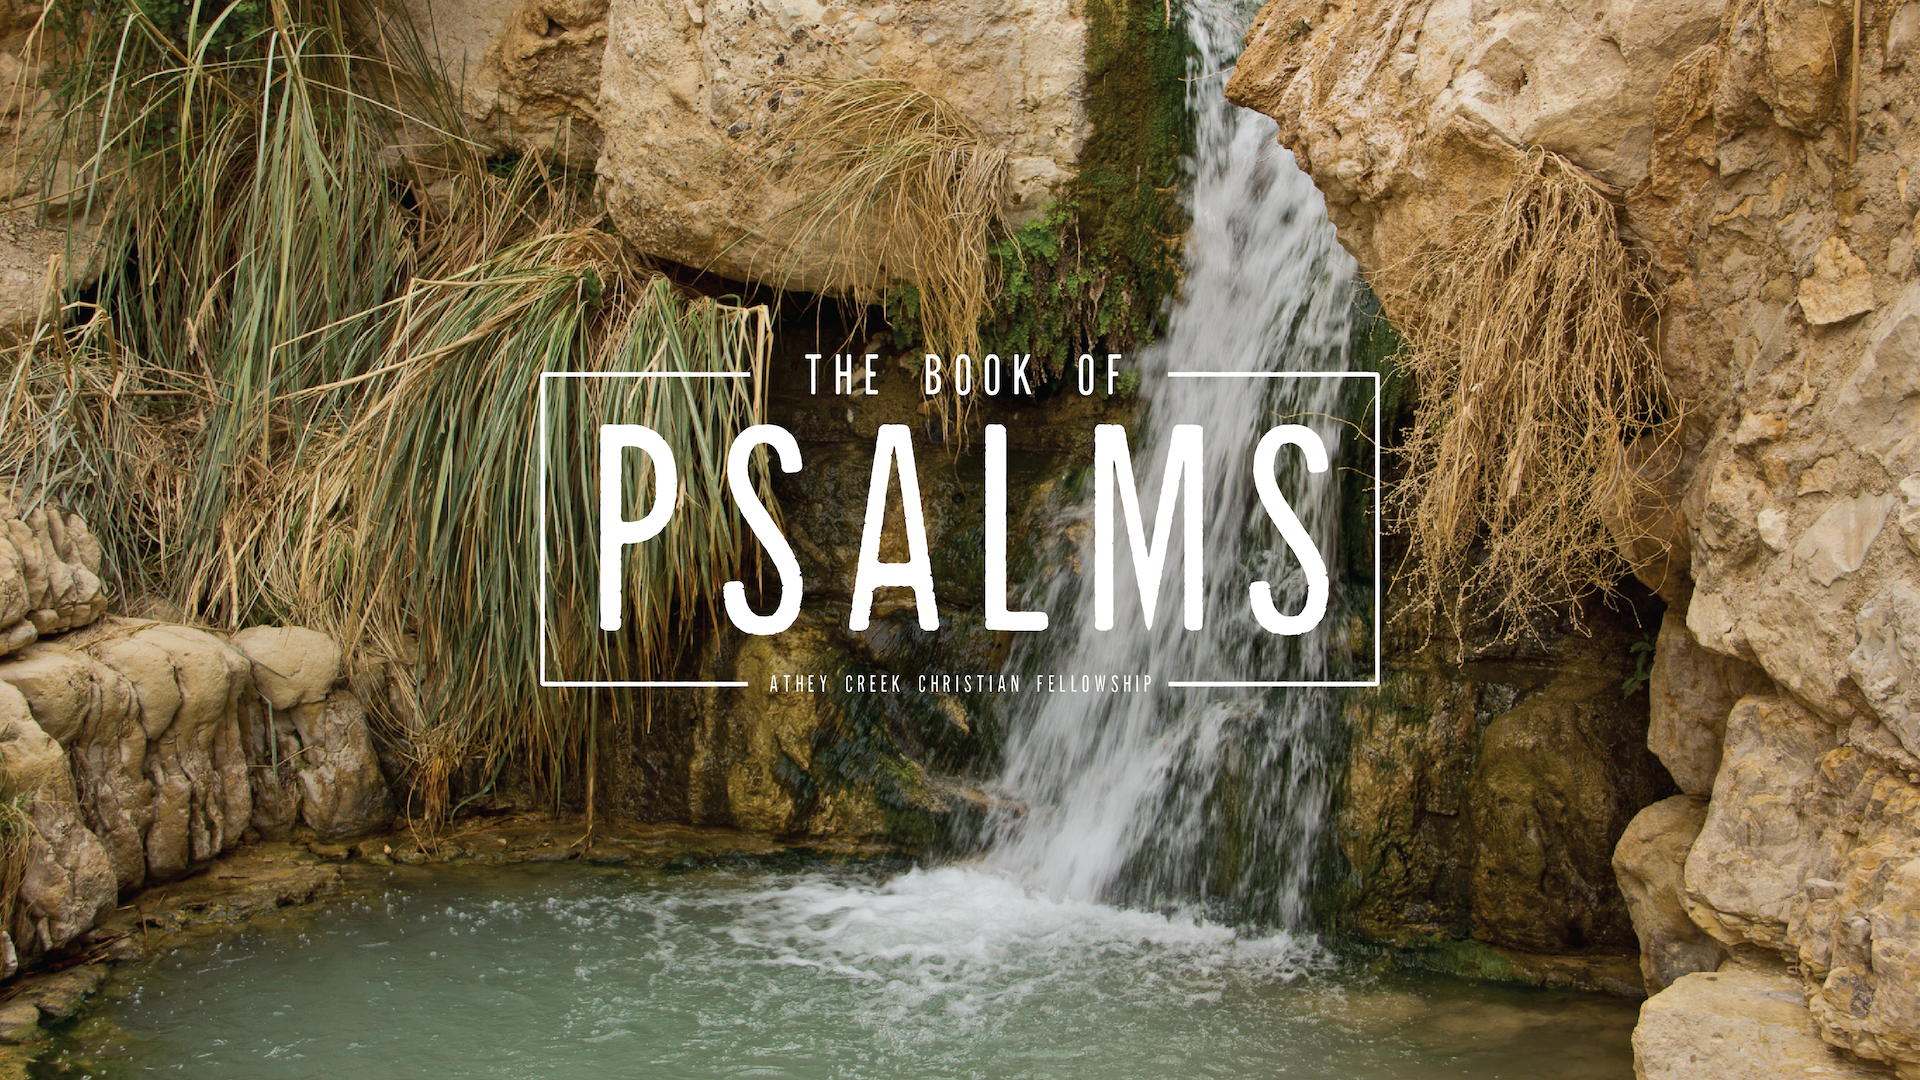 Poster forThrough the Bible (Psalms 68)